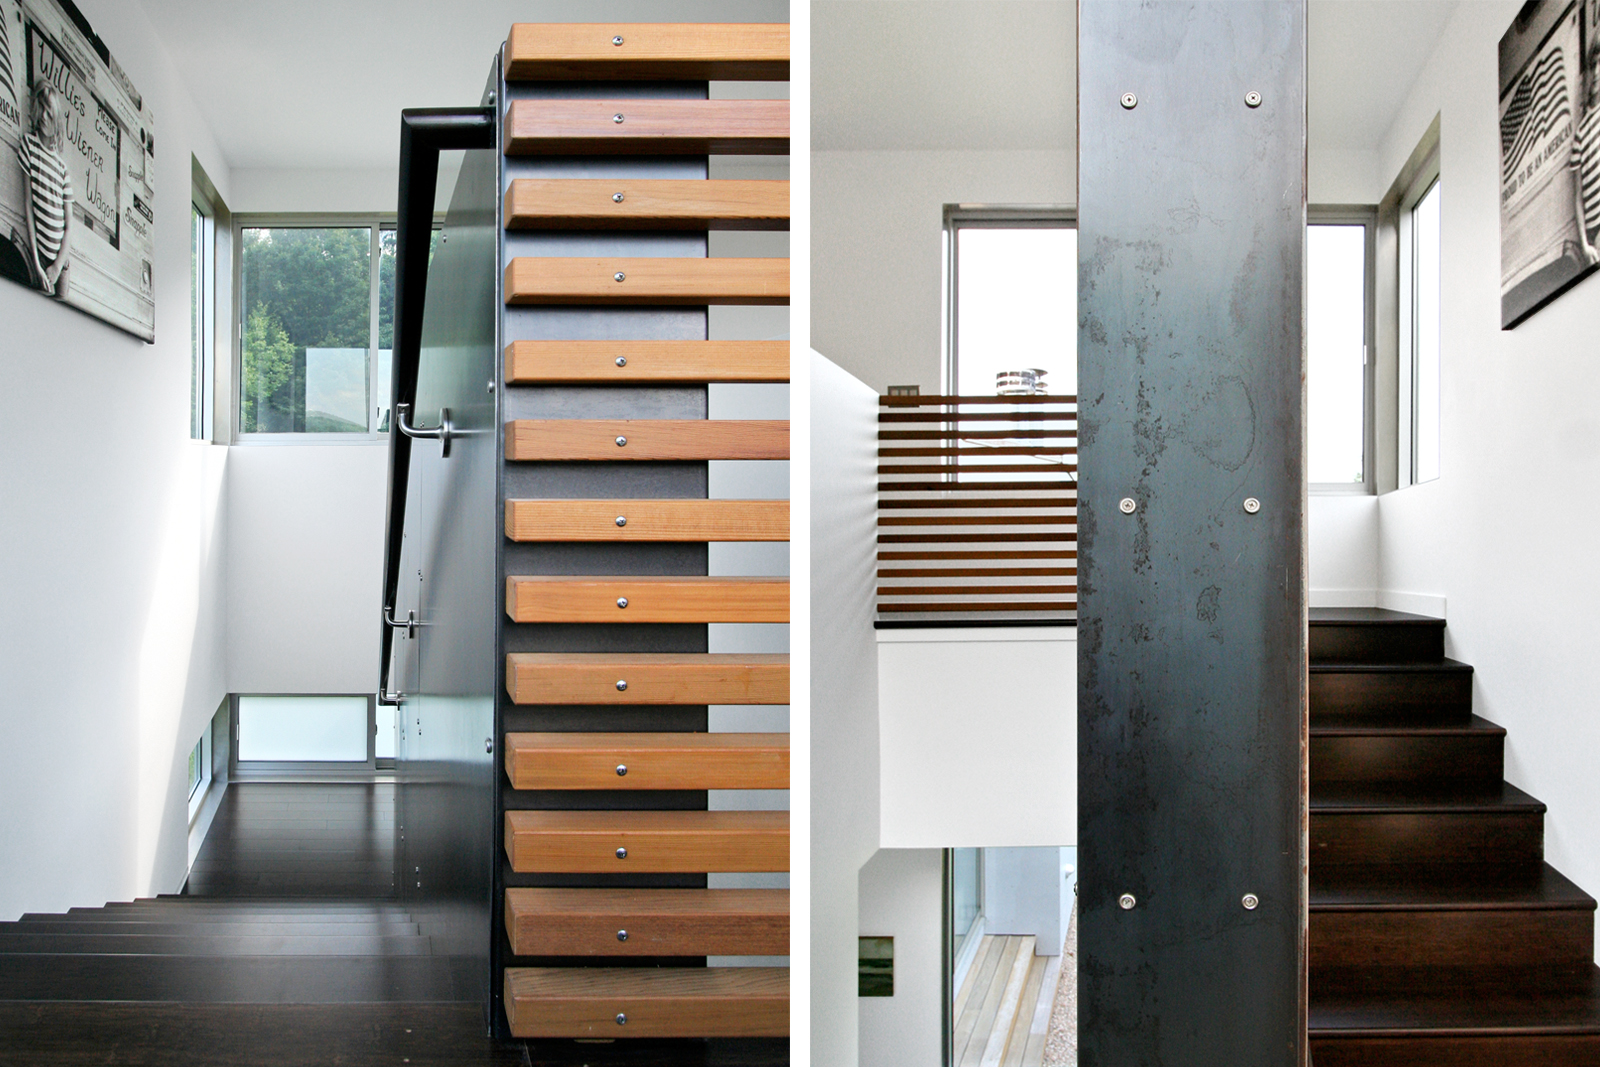 10-res4-resolution-4-architecture-modern-modular-home-prefab-sunset-ridge-house-interior-stairs.jpg